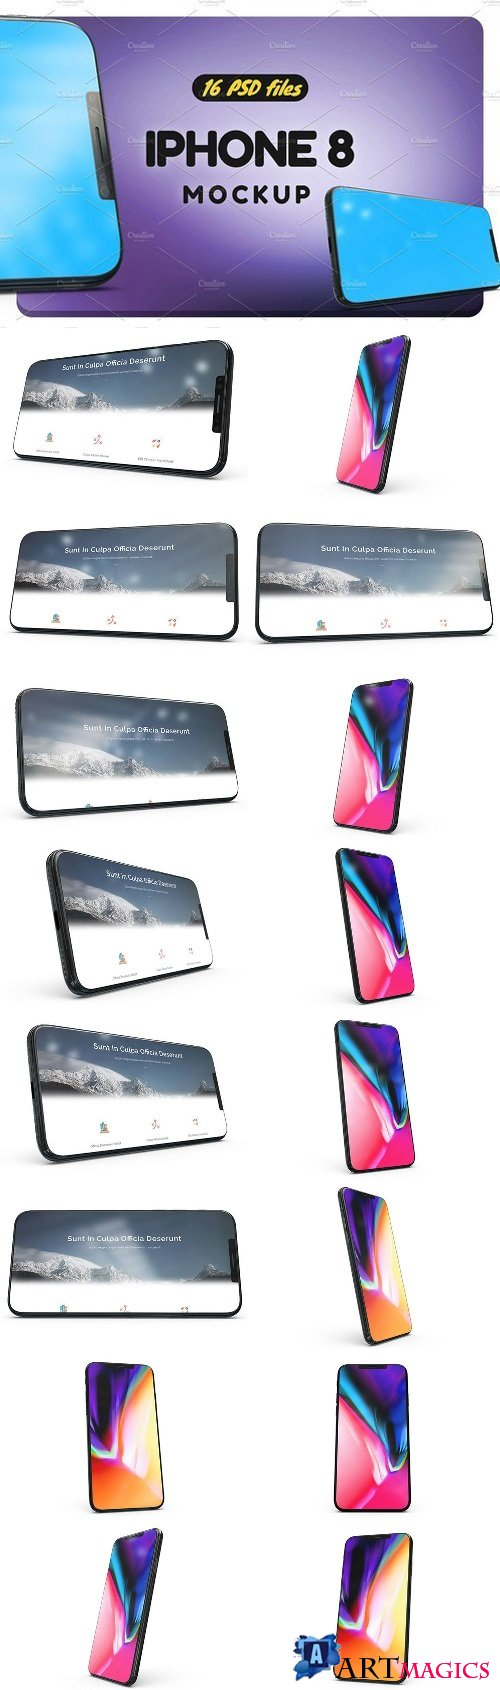 iPhone X Mock-up vol2 2085770